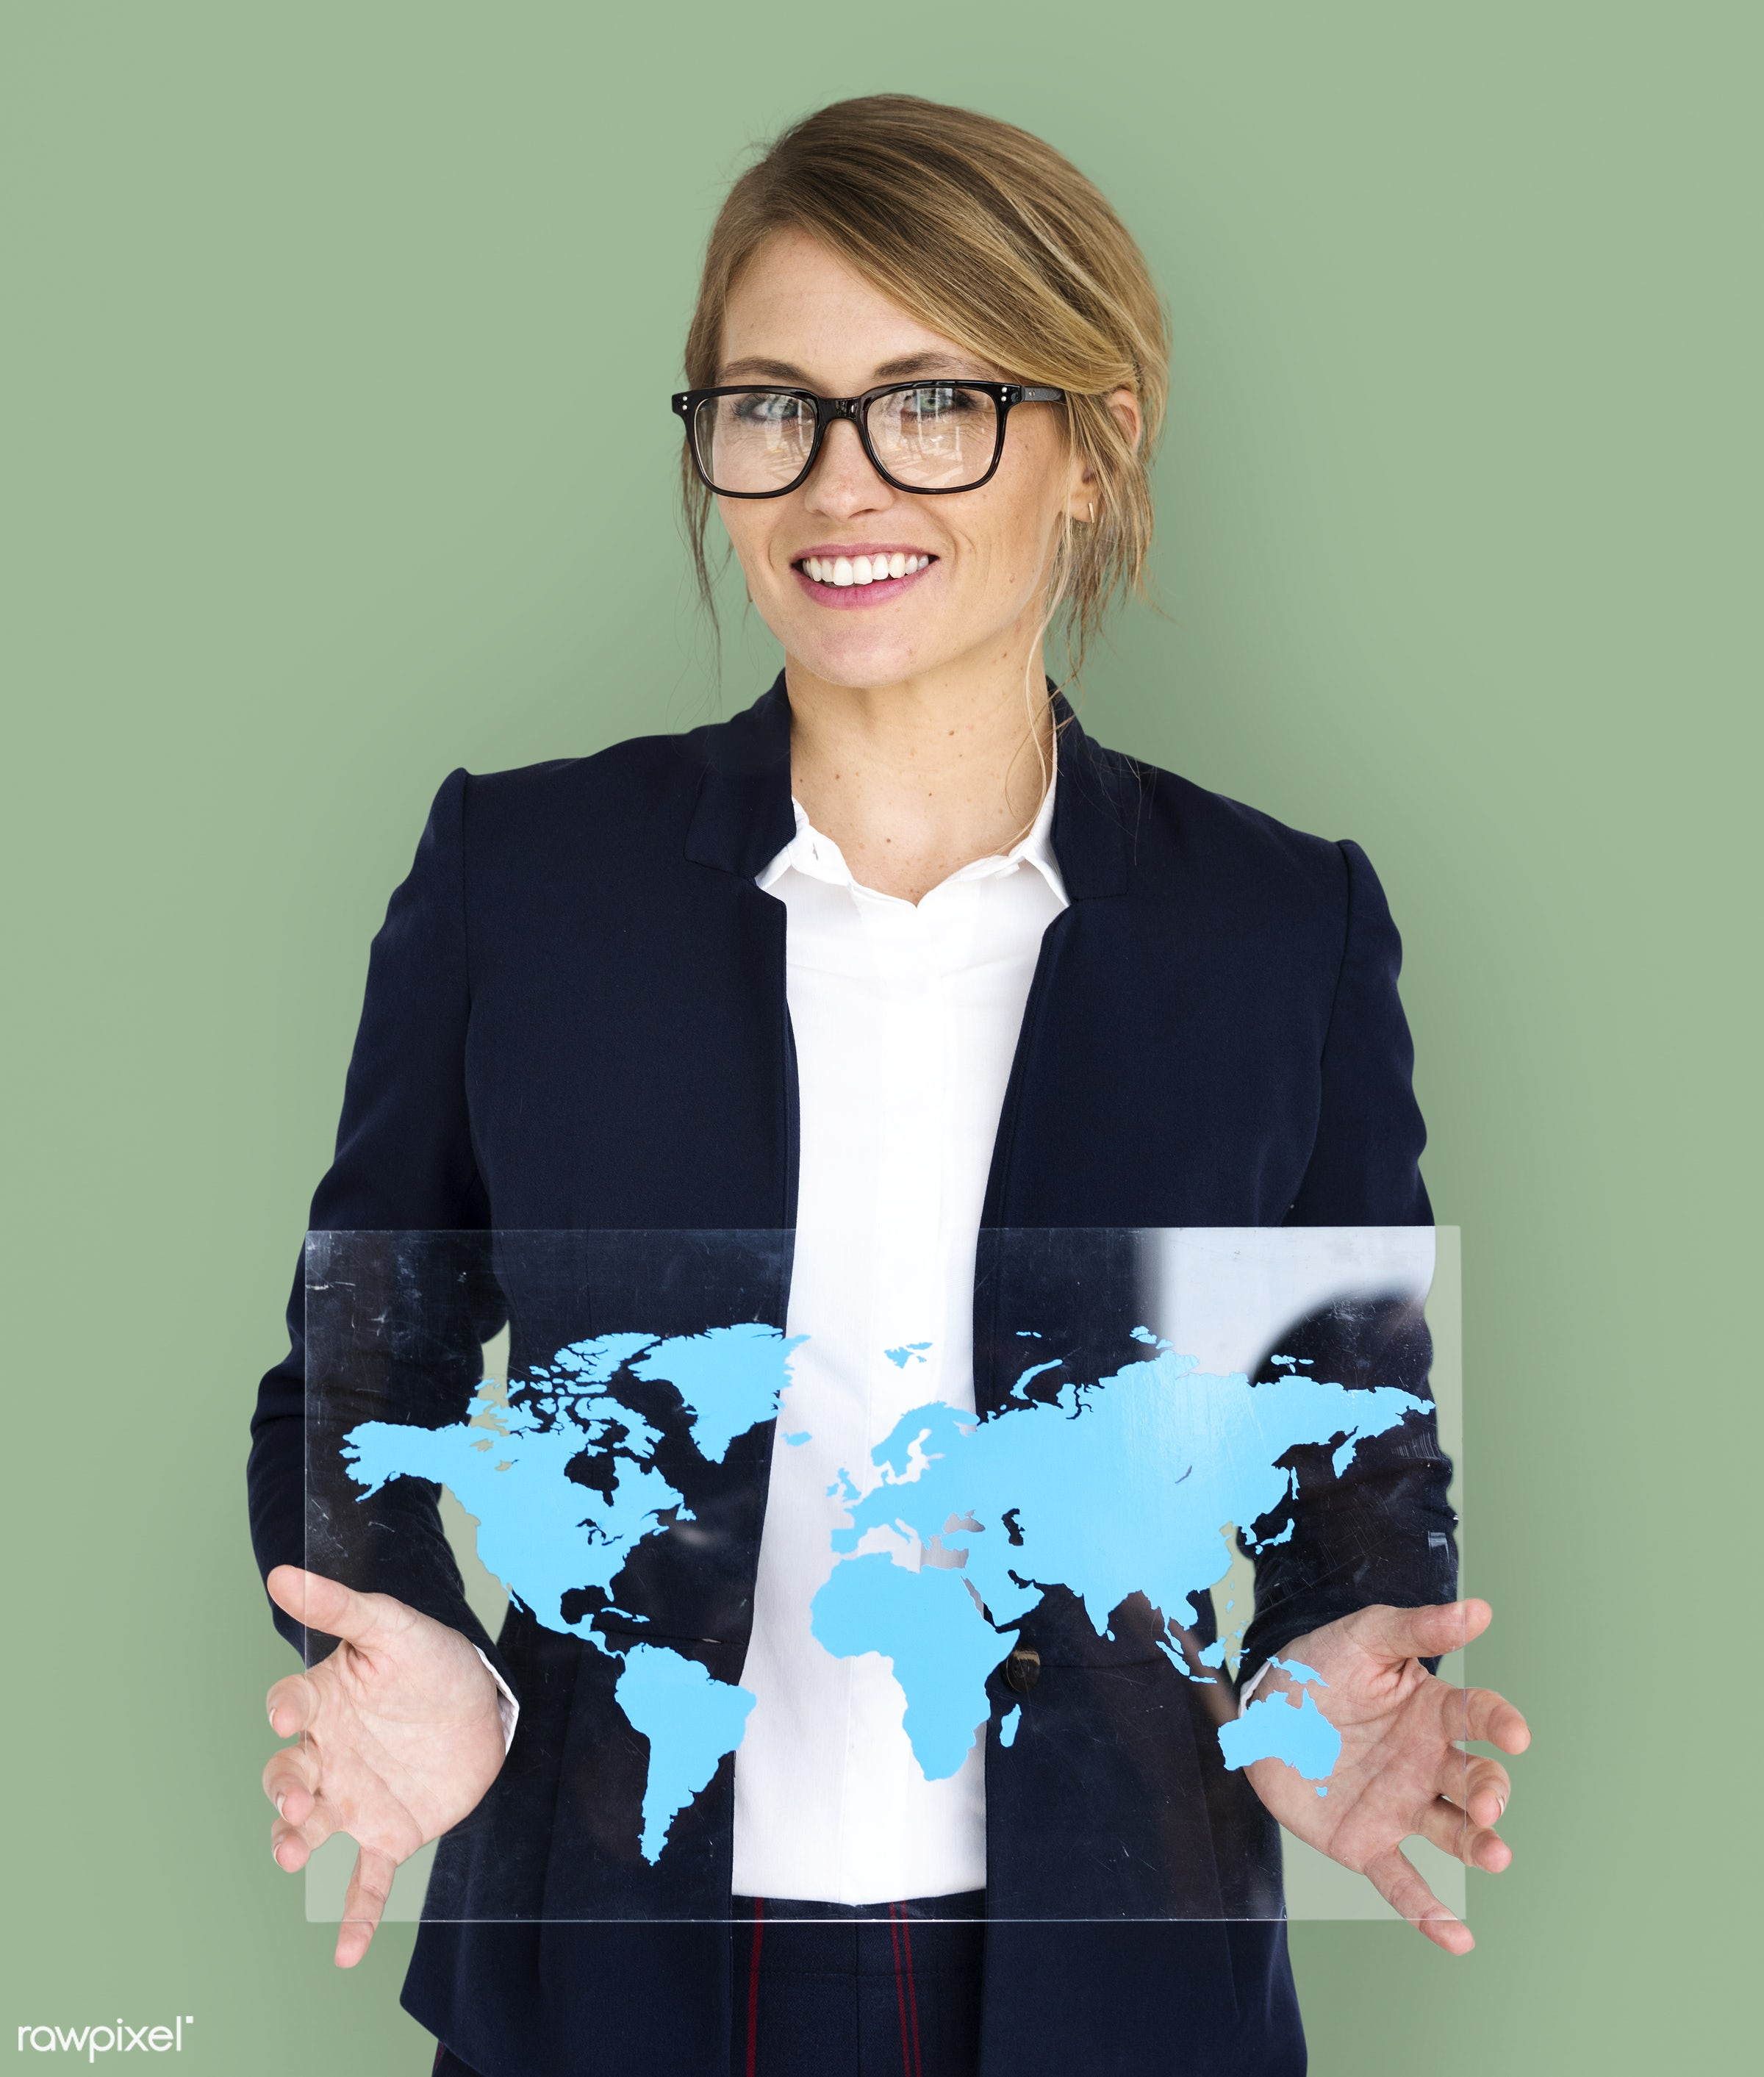 studio, expression, person, holding, people, placard, woman, smile, cheerful, smiling, isolated, connection, global,...